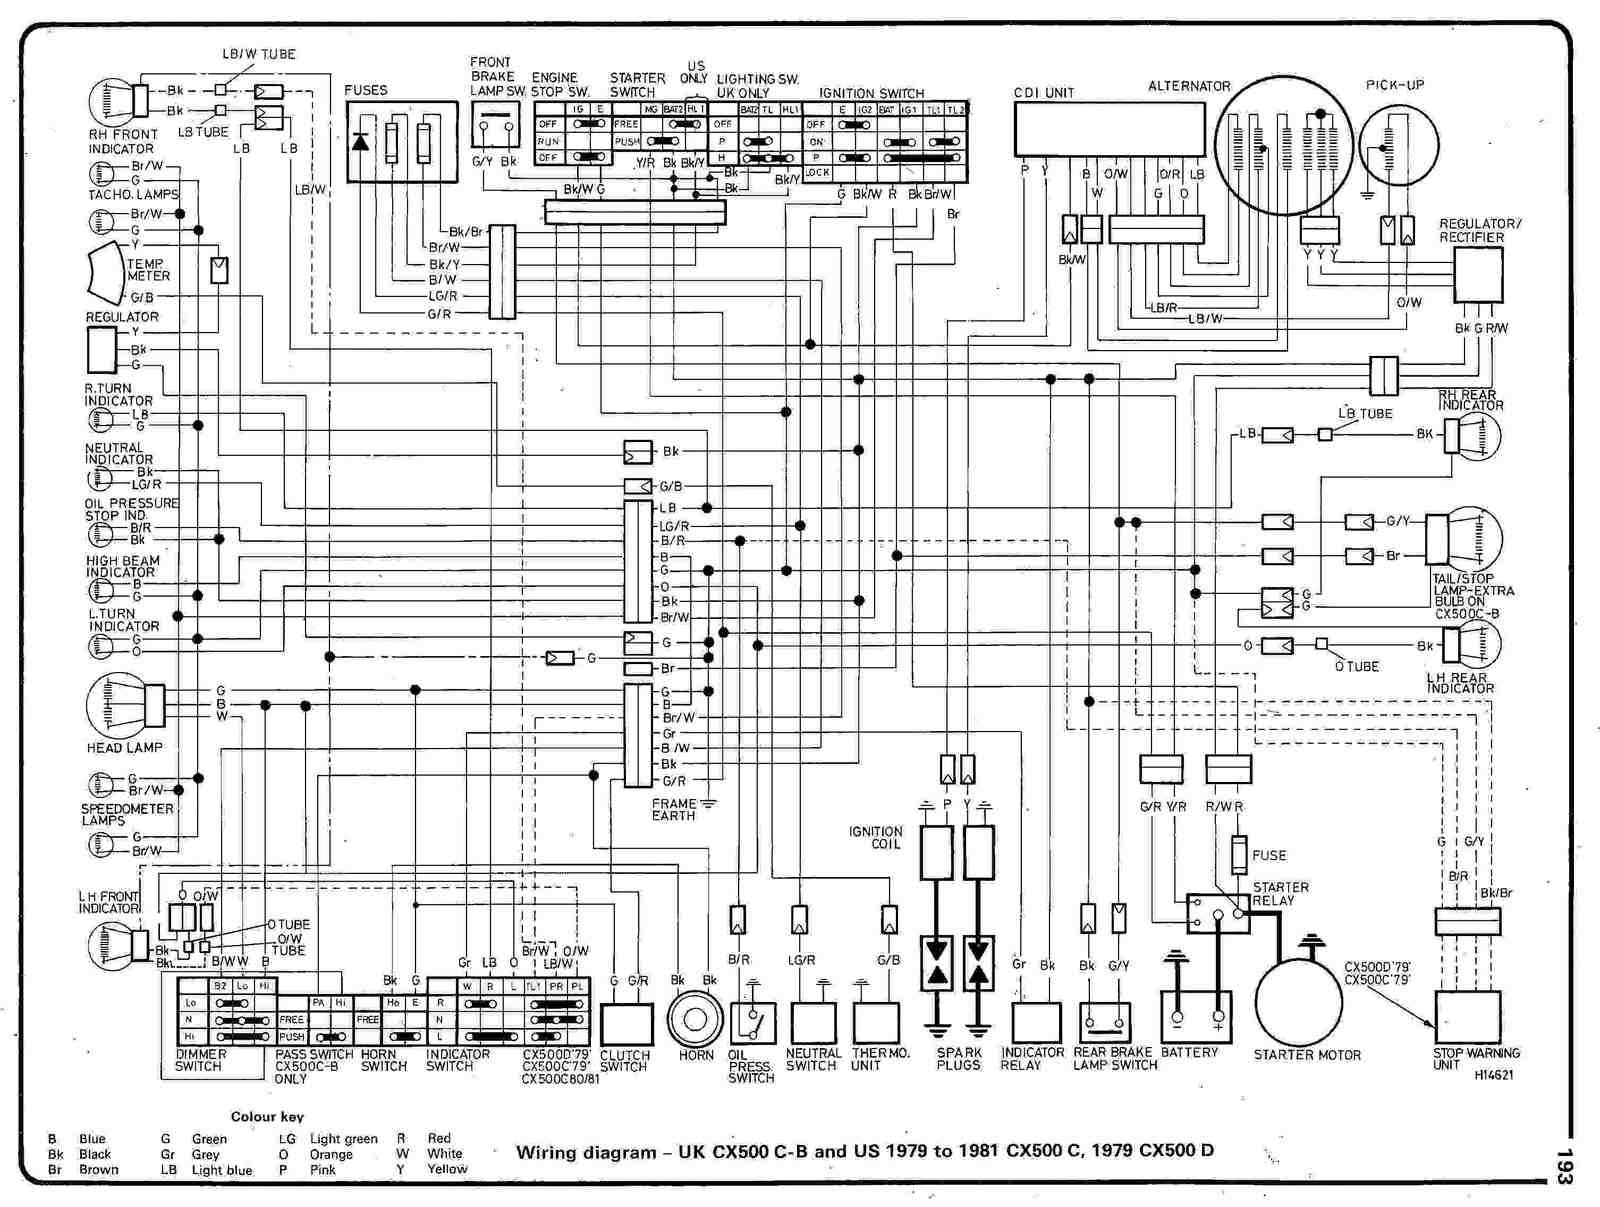 wiring up my starter thinking diagram might be wrong wiring diagram that i found here as